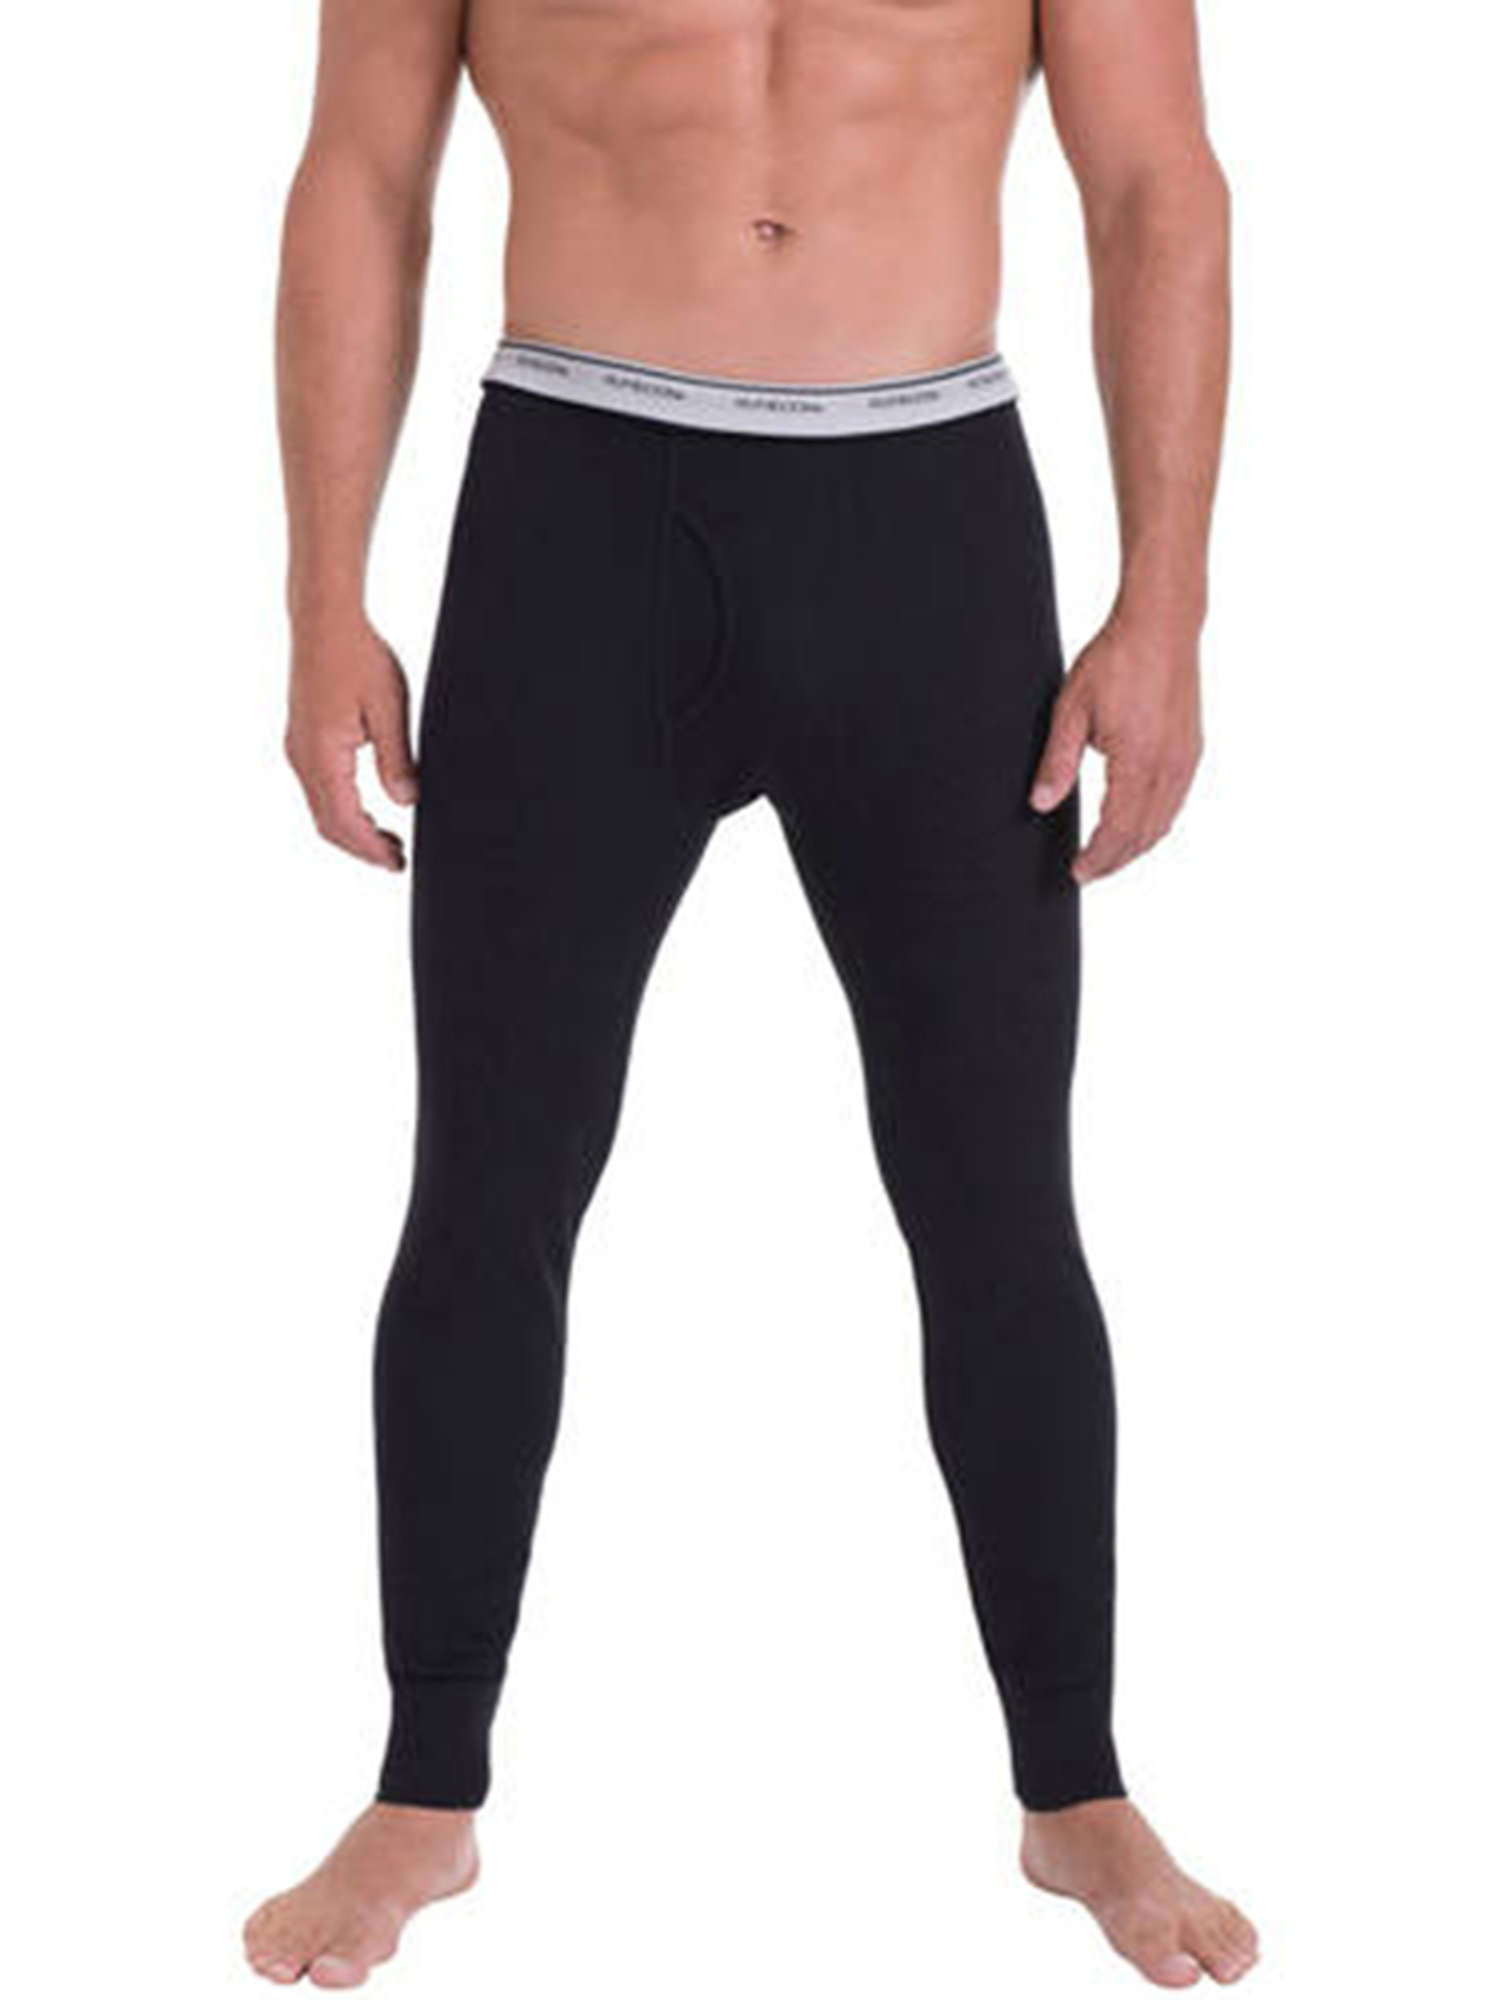 Men's Classic Thermal Underwear Bottom by